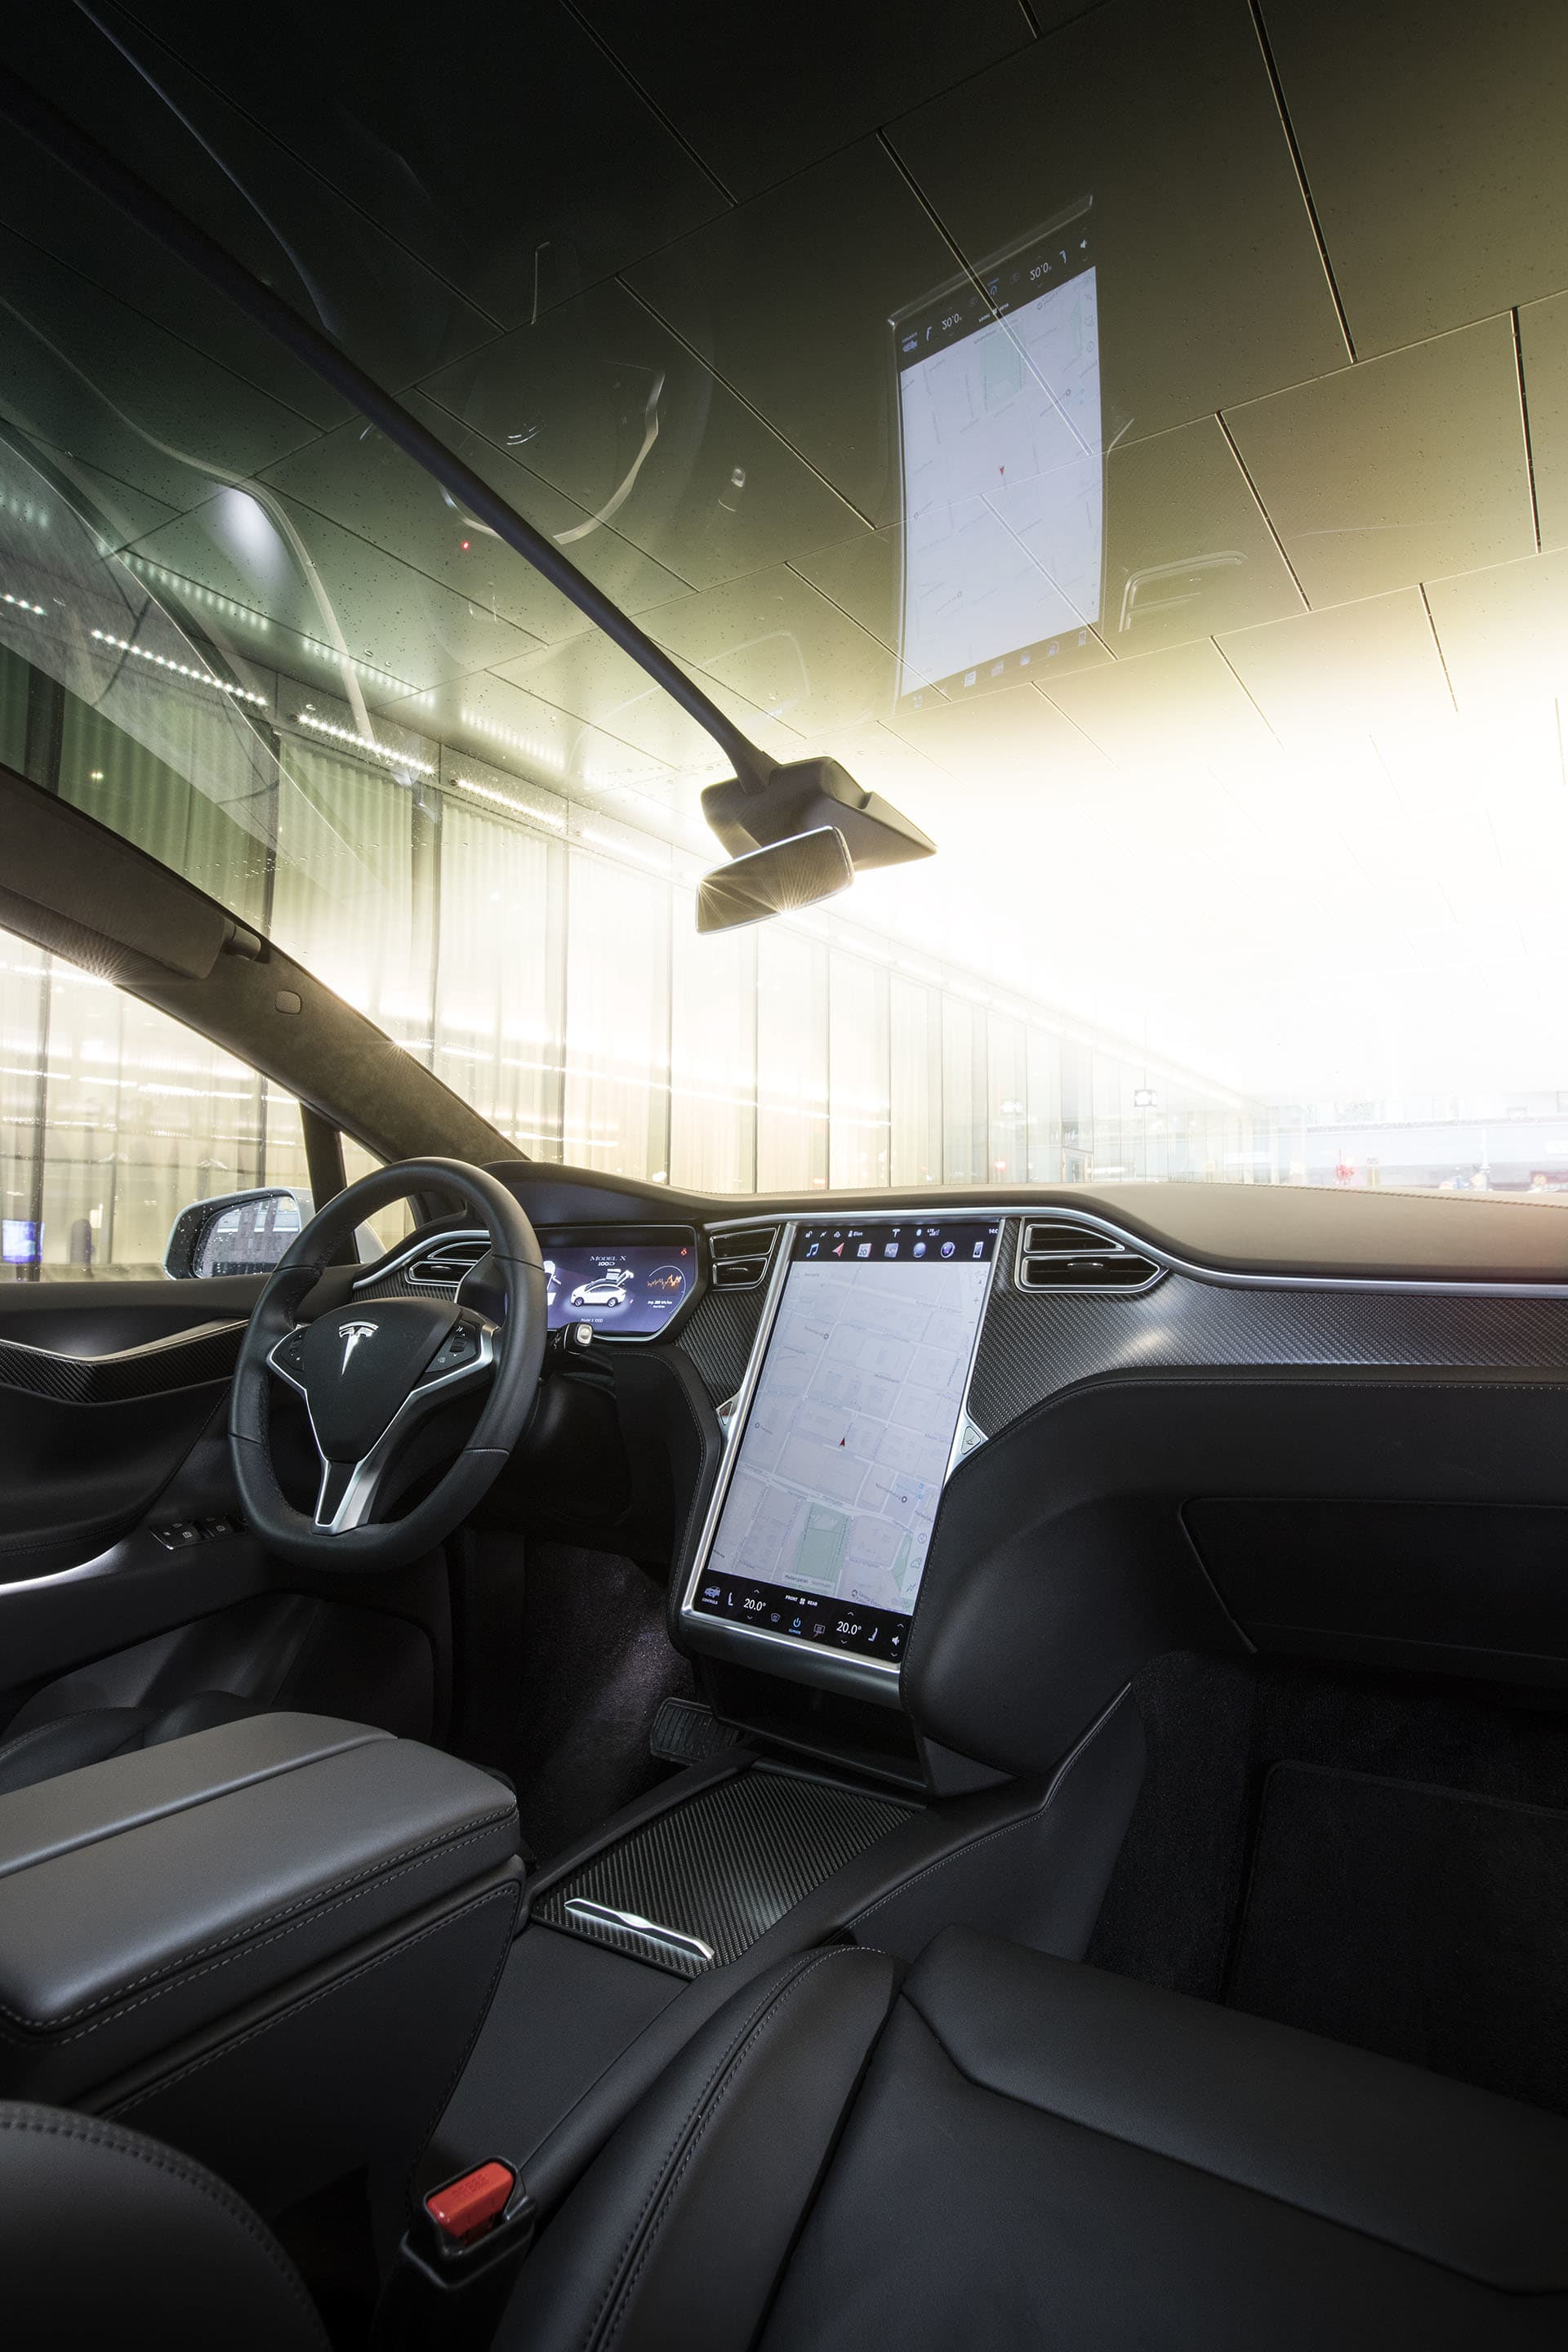 The center console has a 17-inch display that controls all functions of the car.In addition to that, there are plenty of visual buttons or controls.